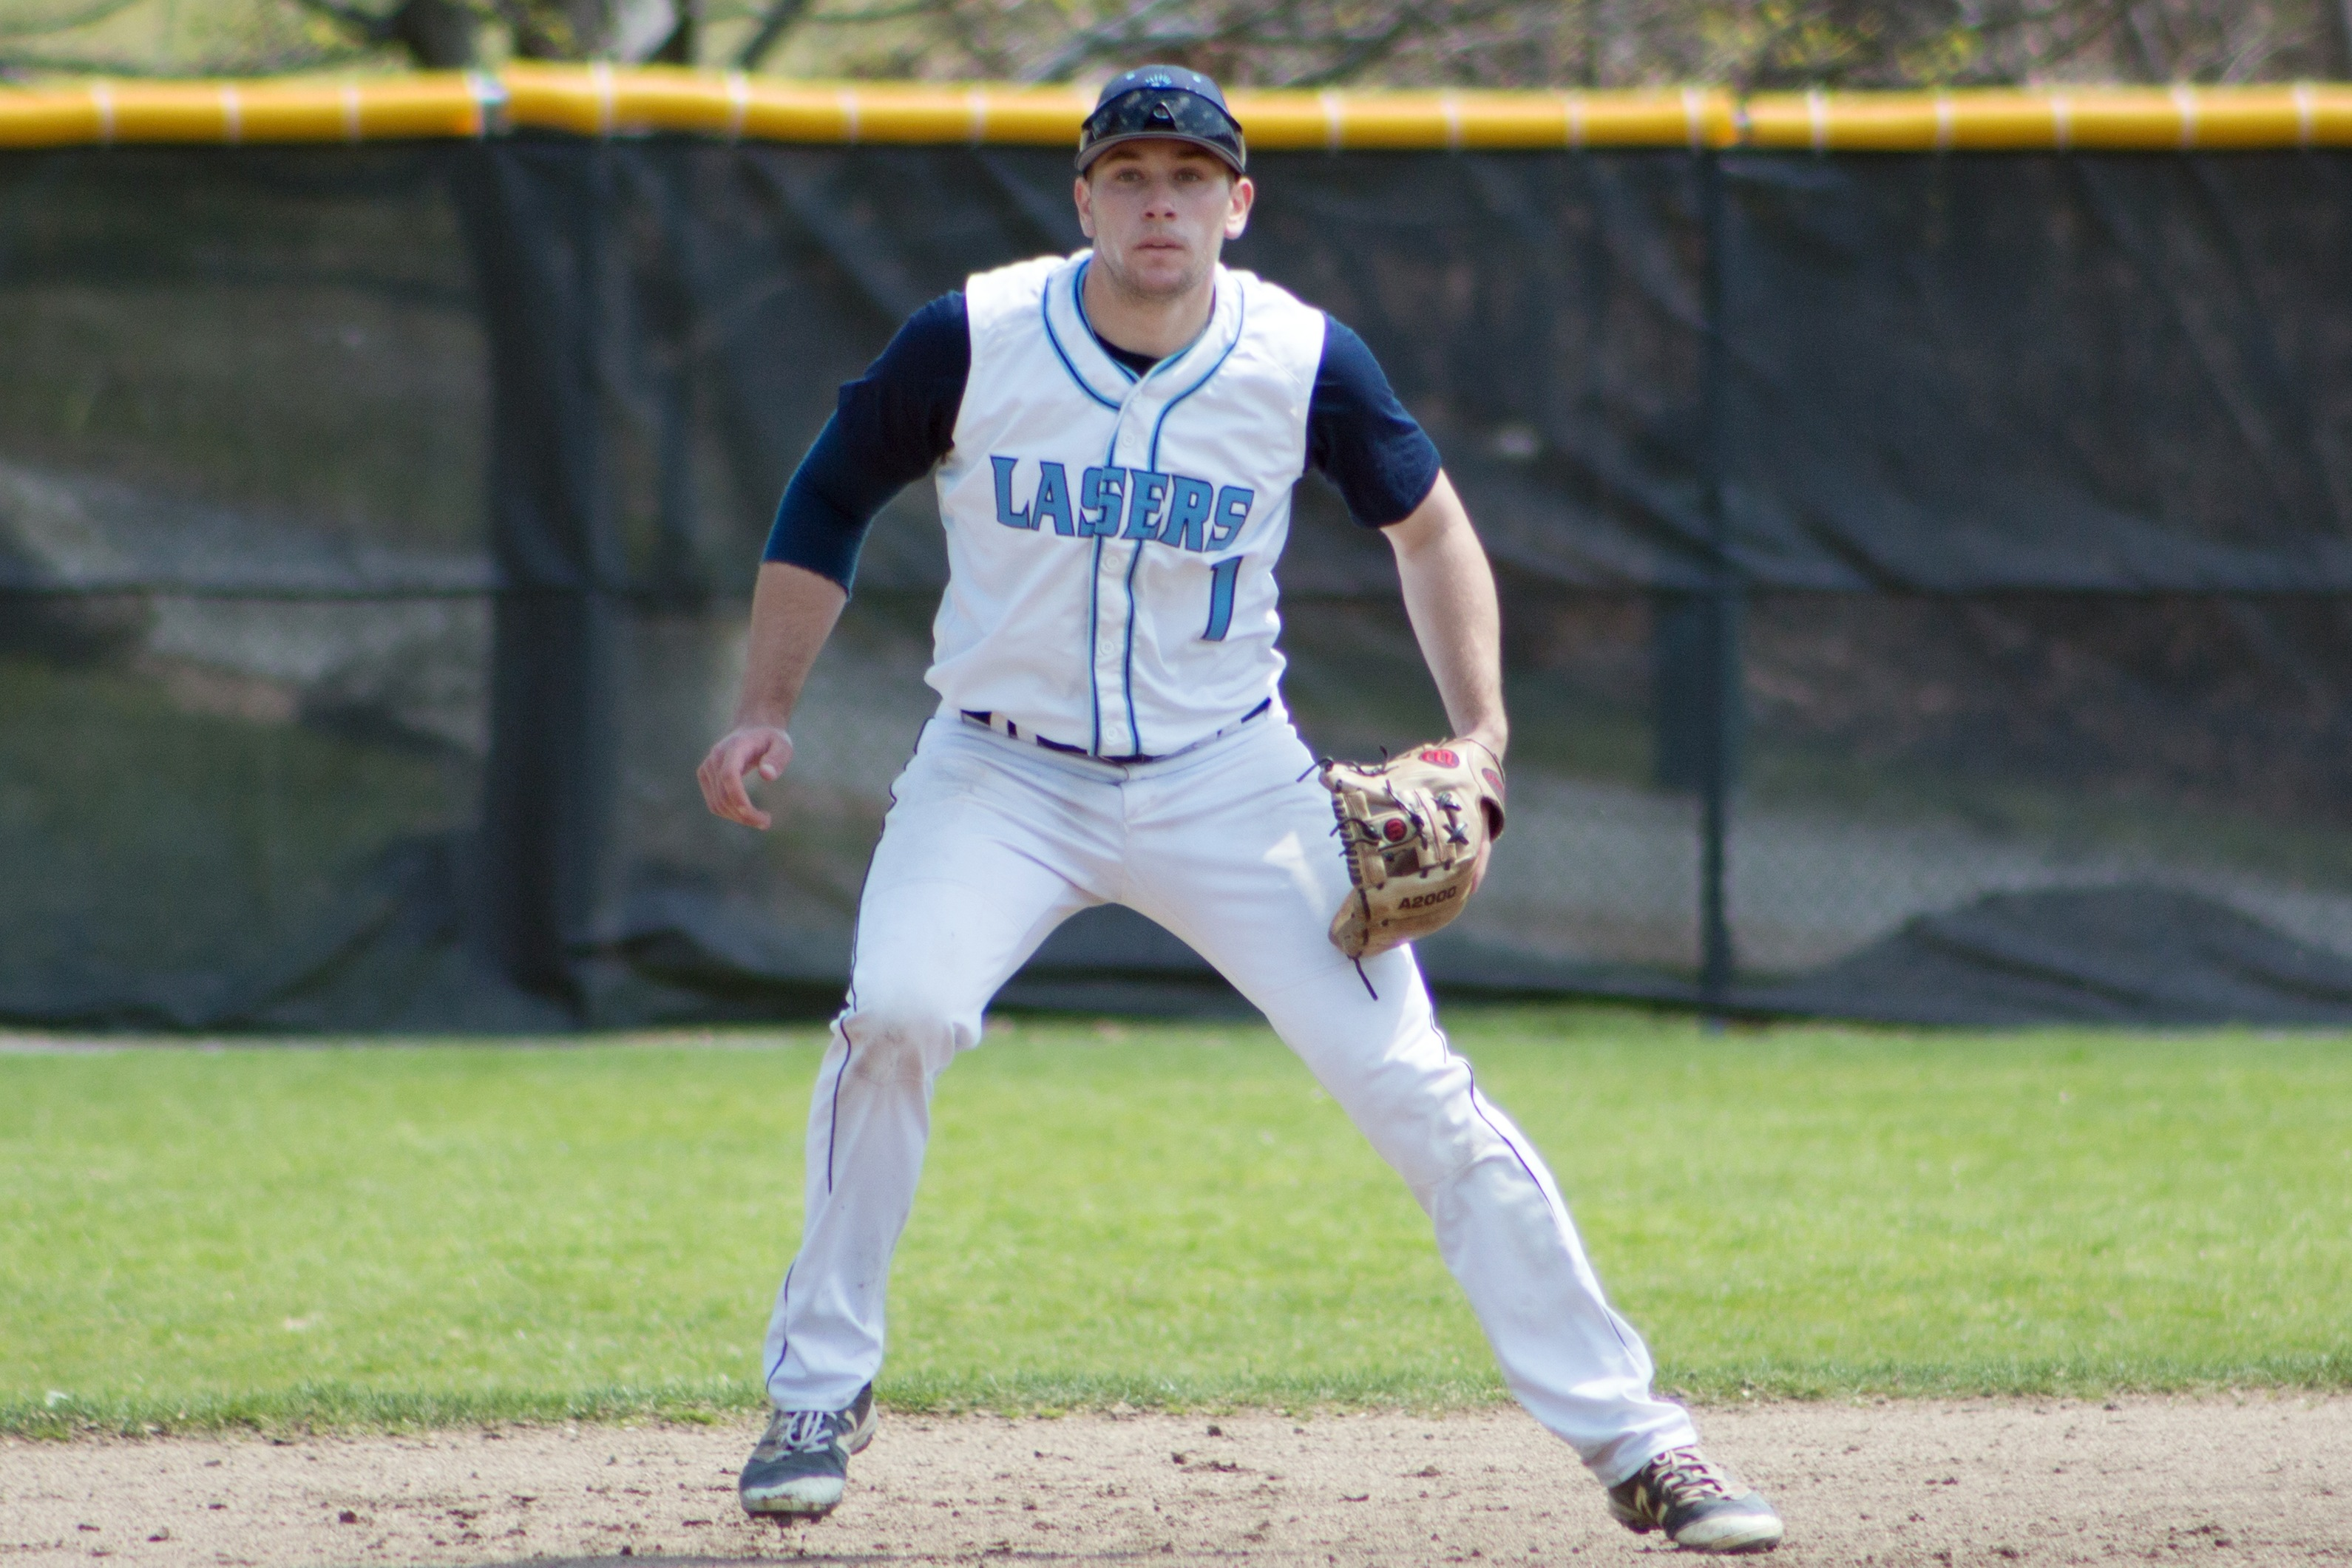 Suffolk pulls out win over Lasell in GNAC Baseball Tournament